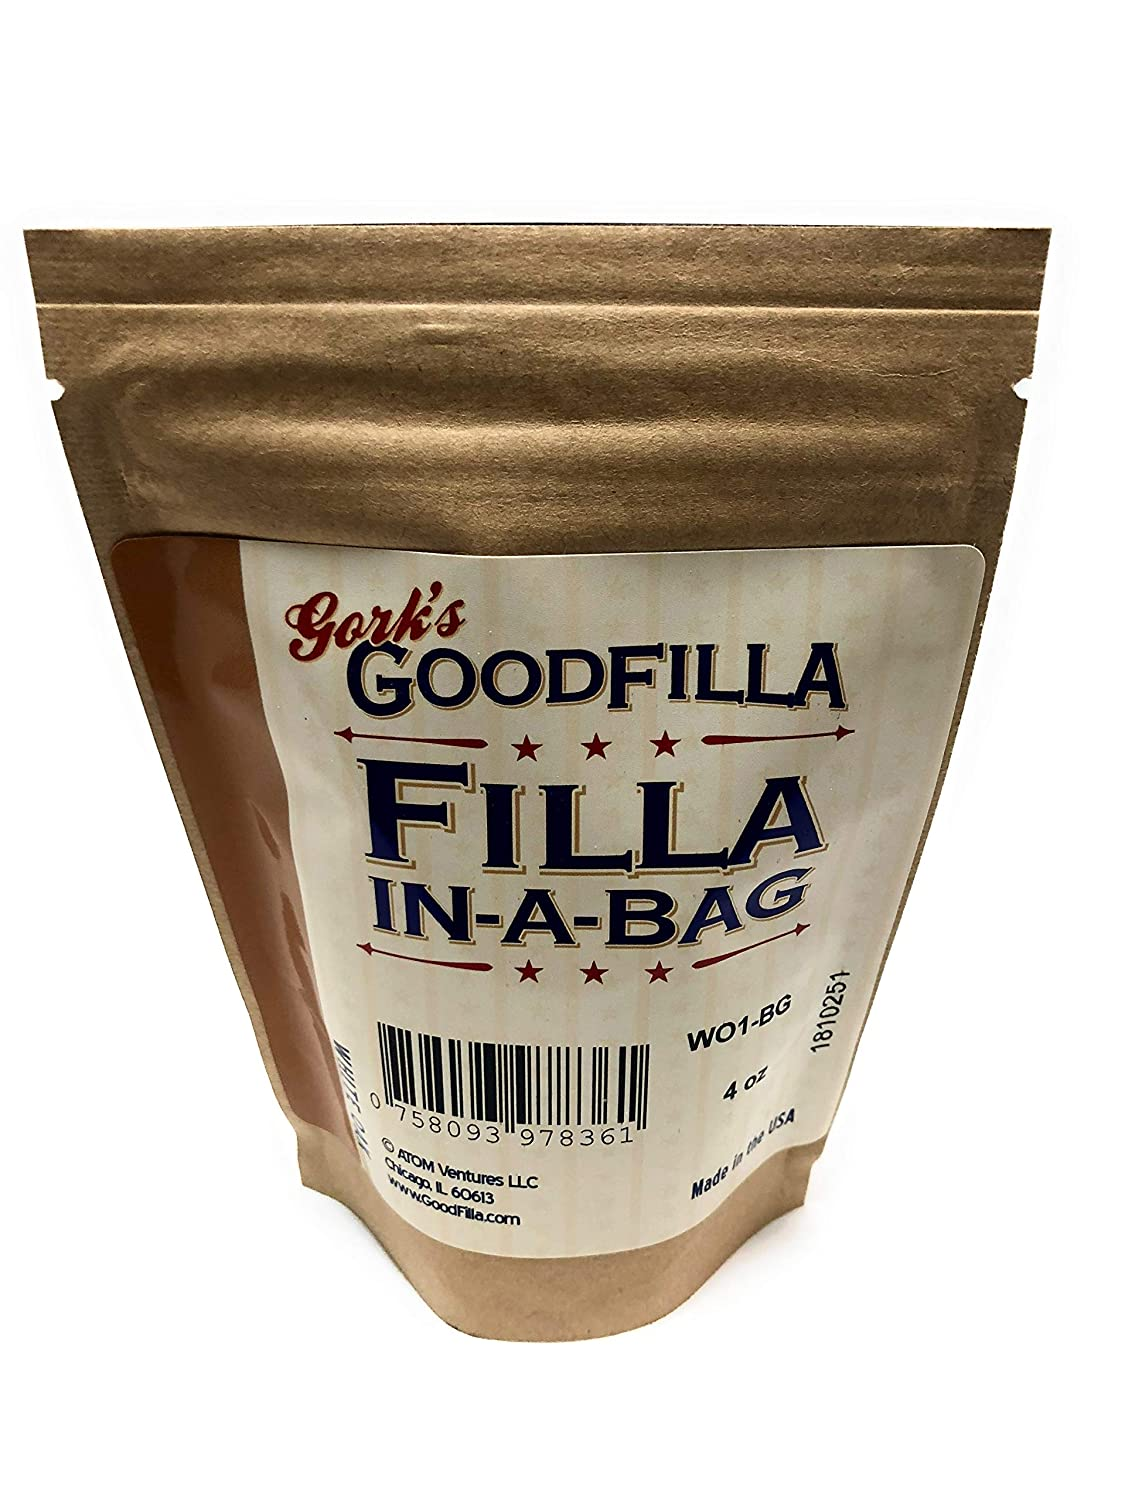 Wood Filler & Putty Powder - Innovative Powder Formula - Filla-In-A-Bag -  White Oak - 4 oz By Goodfilla | Repairs, Finishes & Patches | Paintable,